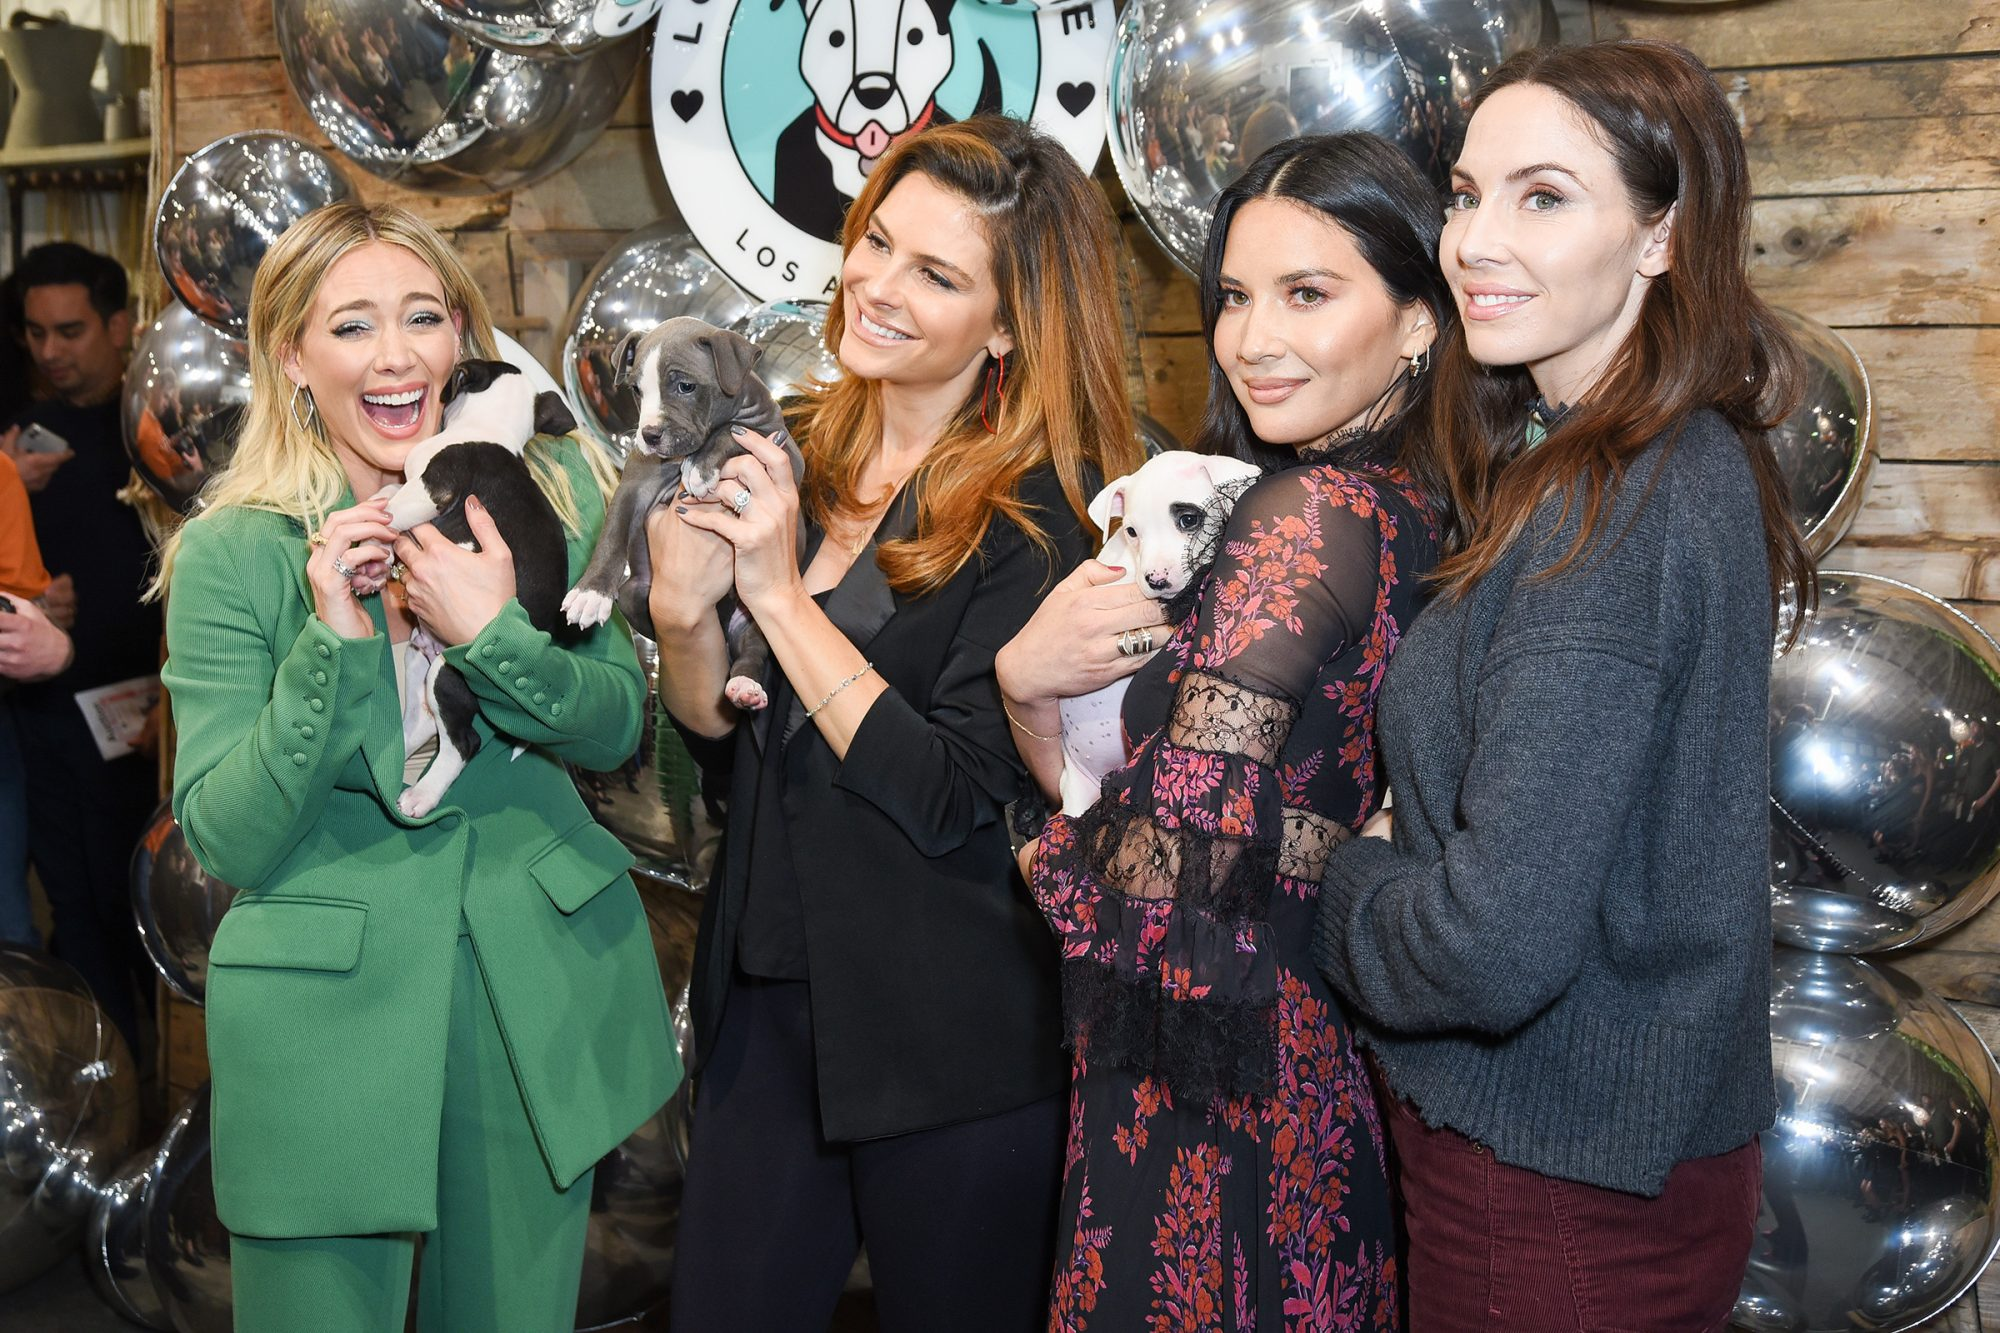 Victoria Justice, Hilary Duff, Whitney Cummings, Maria Menounos and Olivia Munn attends Love Leo Rescue's 2nd Annual Cocktails for a Cause at Rolling Greens Los Angeles on November 06, 2019 in Los Angeles